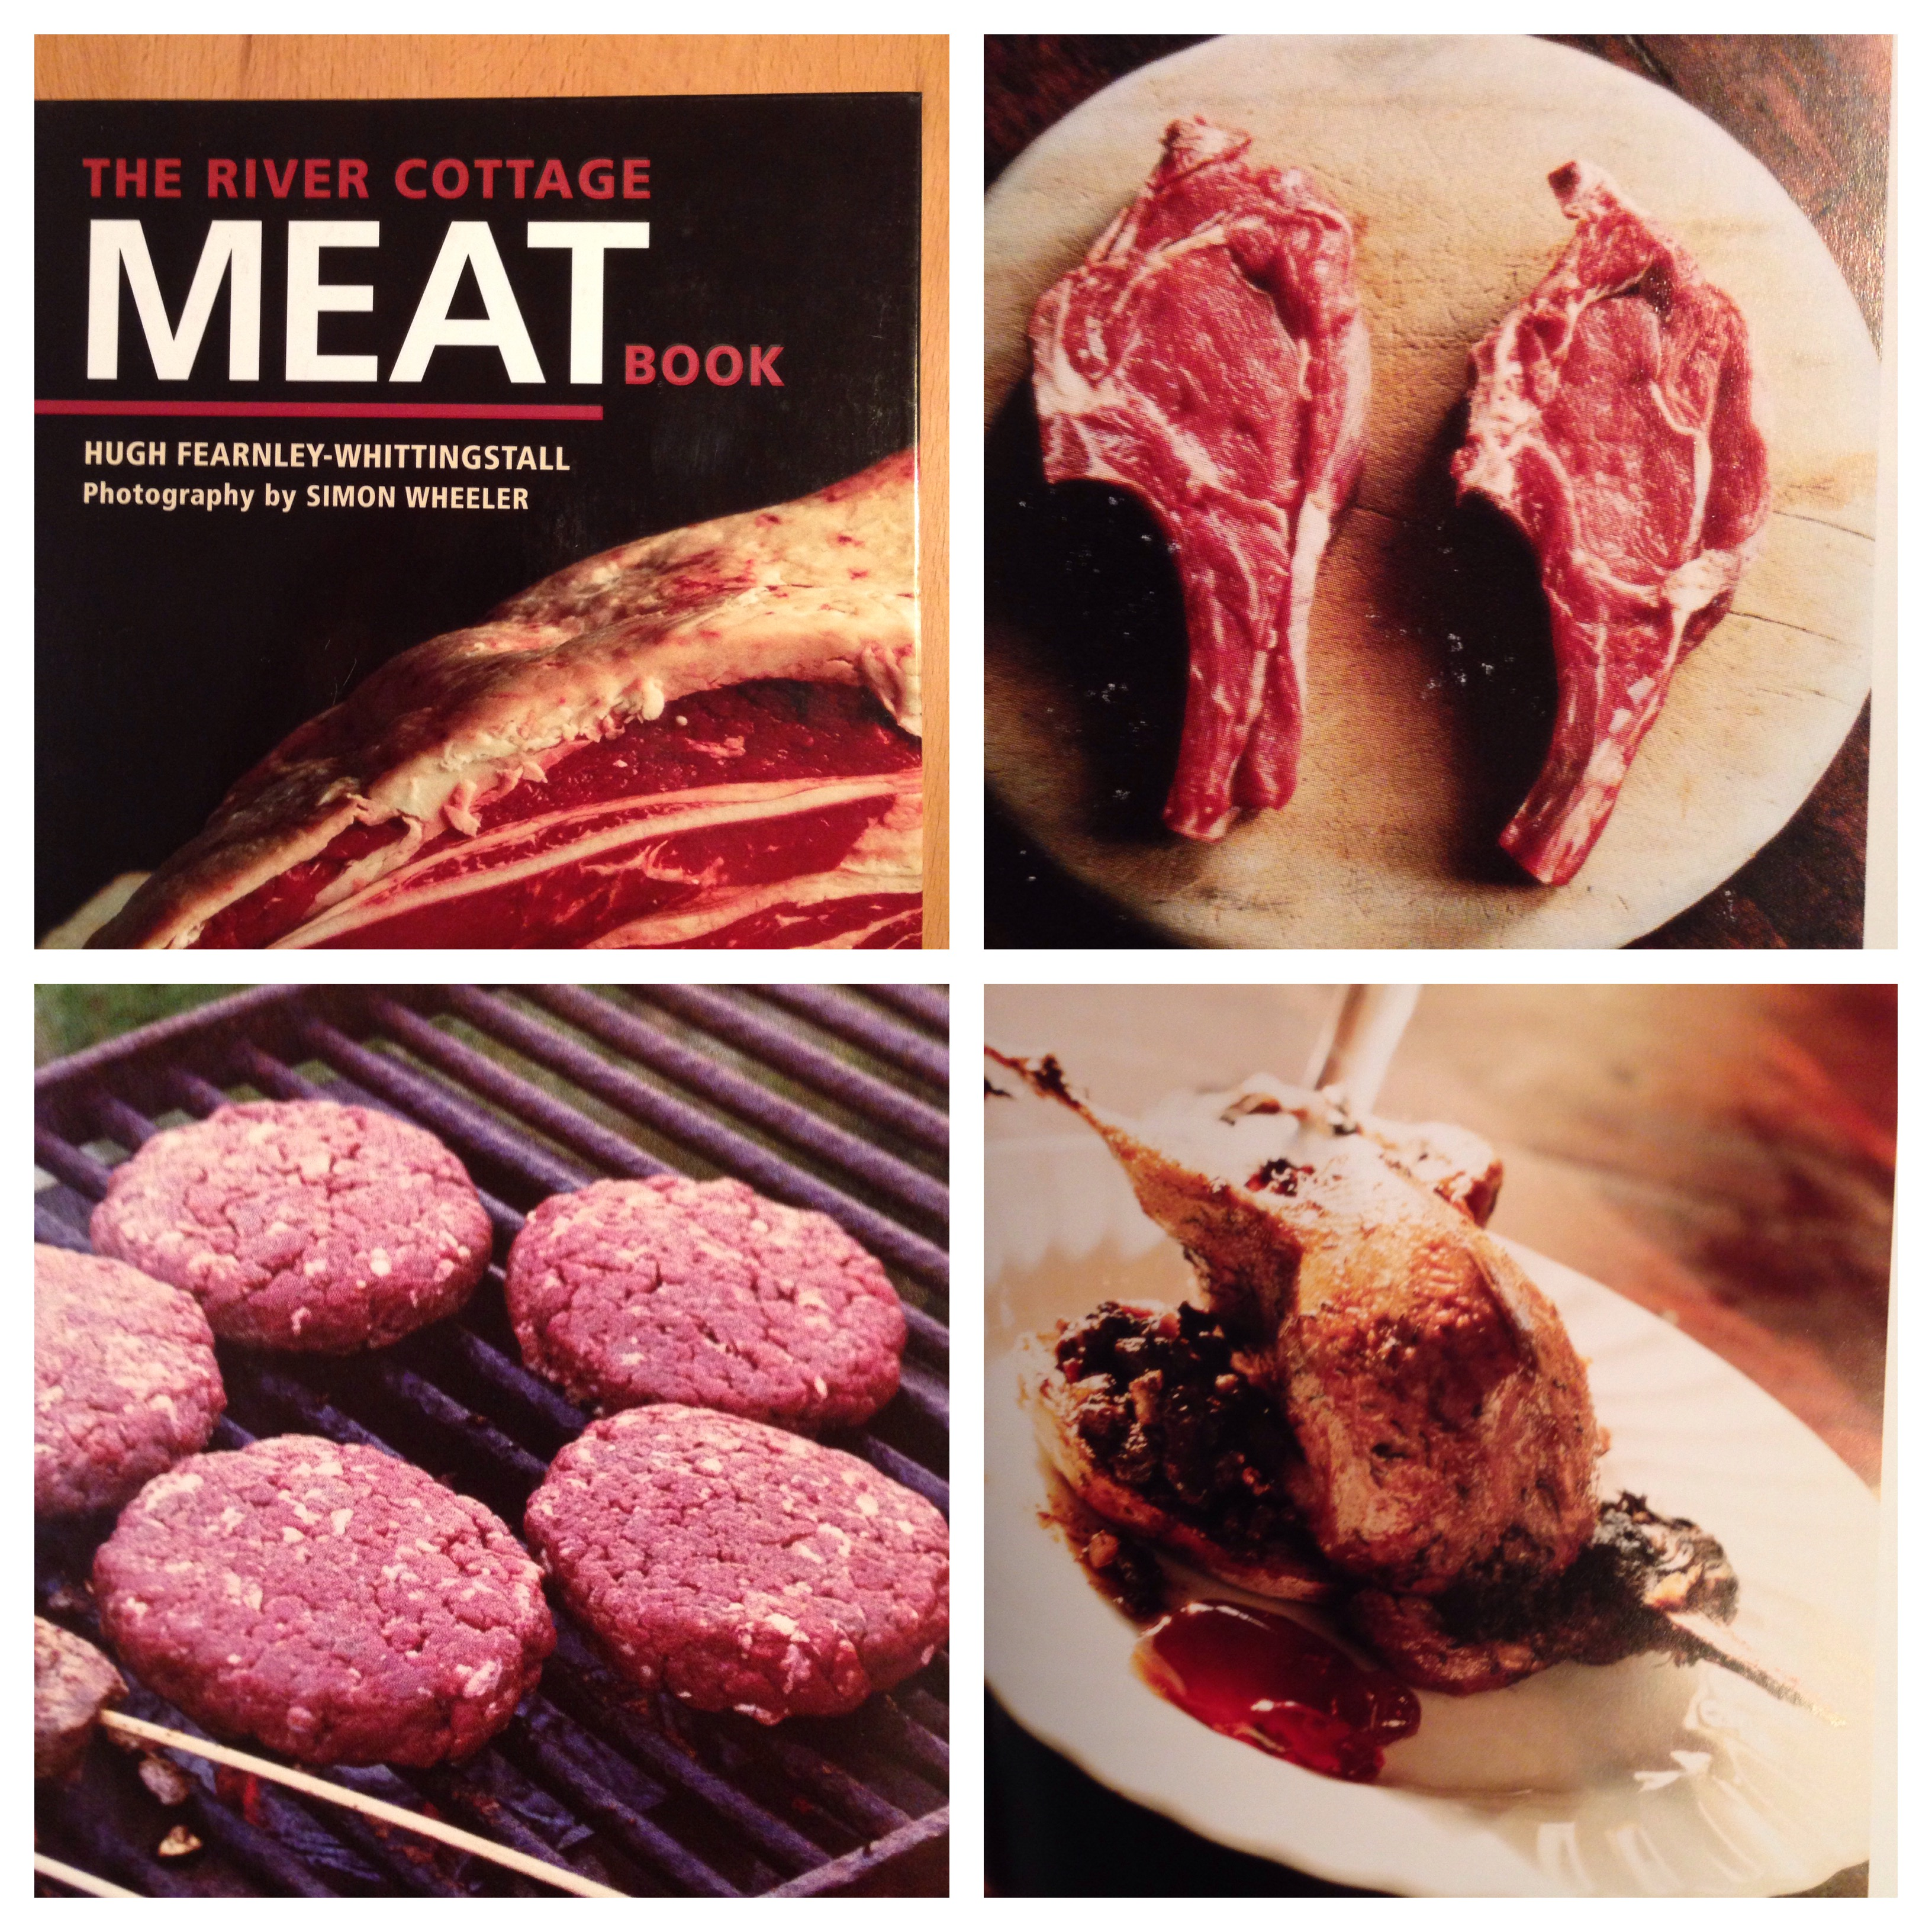 allemaal vleesjes the river cottage meat book hot cuisine de pierre rh hcdpierre com river cottage meat book roasting times the river cottage meat book by hugh fearnley-whittingstall